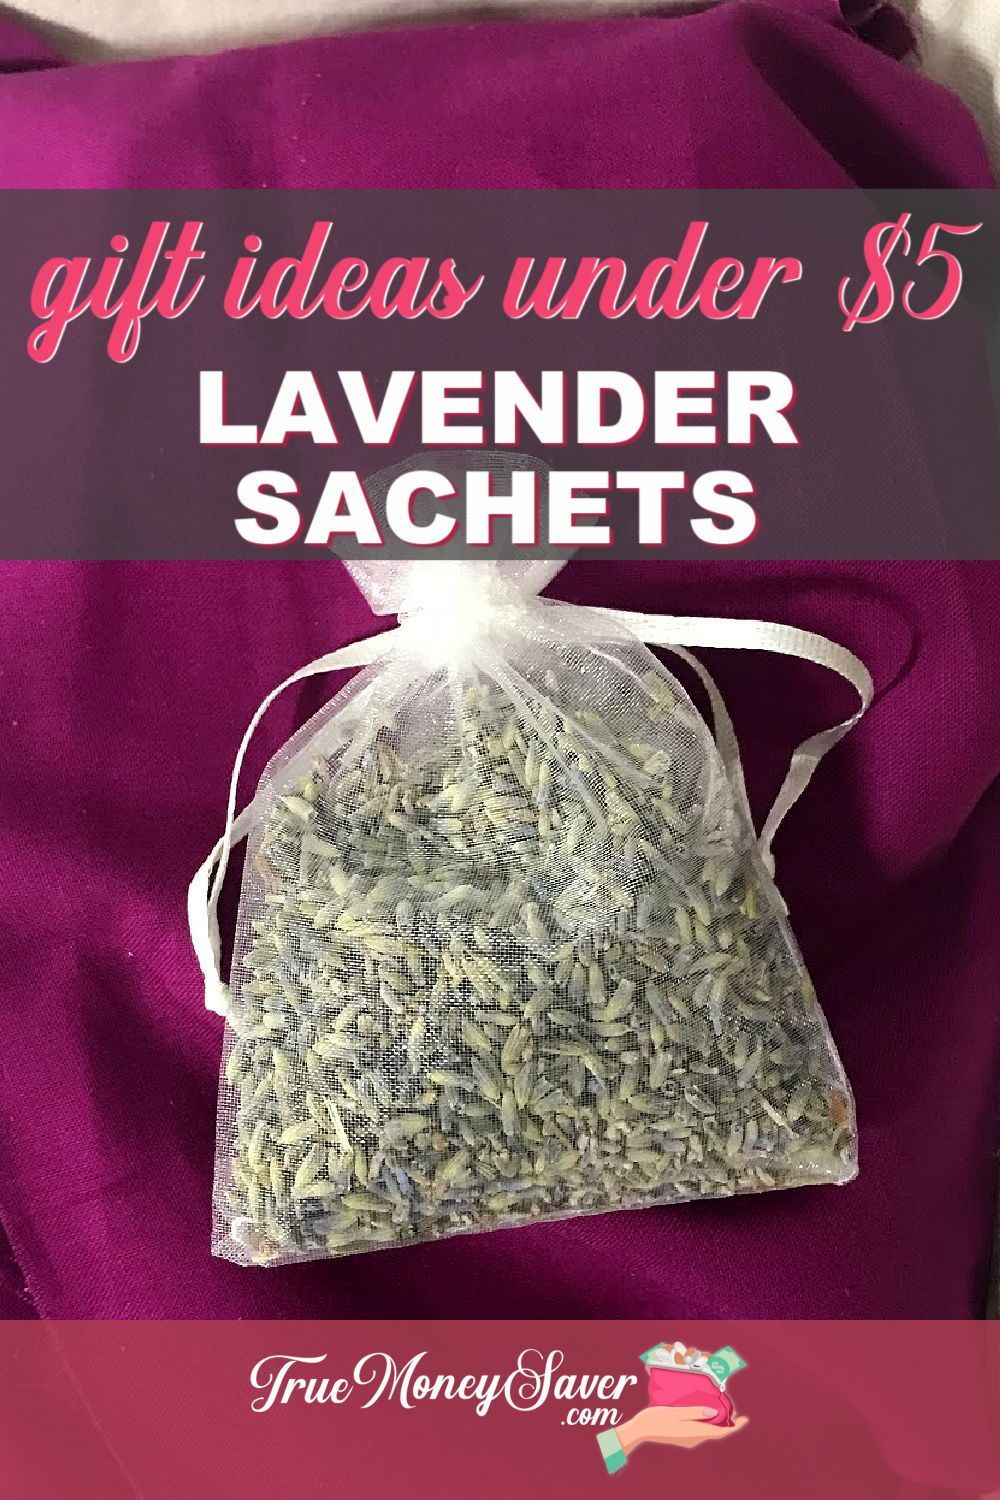 Put this easy #DIY gift on your list! Check out these NEW 12 #gifts under $5! They are DIY gift ideas that everyone will love! Plus, these creative DIY #homemade gifts will help keep your budget in check! #truemoneysaver #christmas #gifts #makeyourowngifts #doityourselfgifts #craftedgifts #giftstomake   cheap gifts   dried lavender uses   cheap gift ideas   Christmas present ideas   lavender sachet   homemade gift   homemade gift ideas   homemade presents   what to do with lavender  